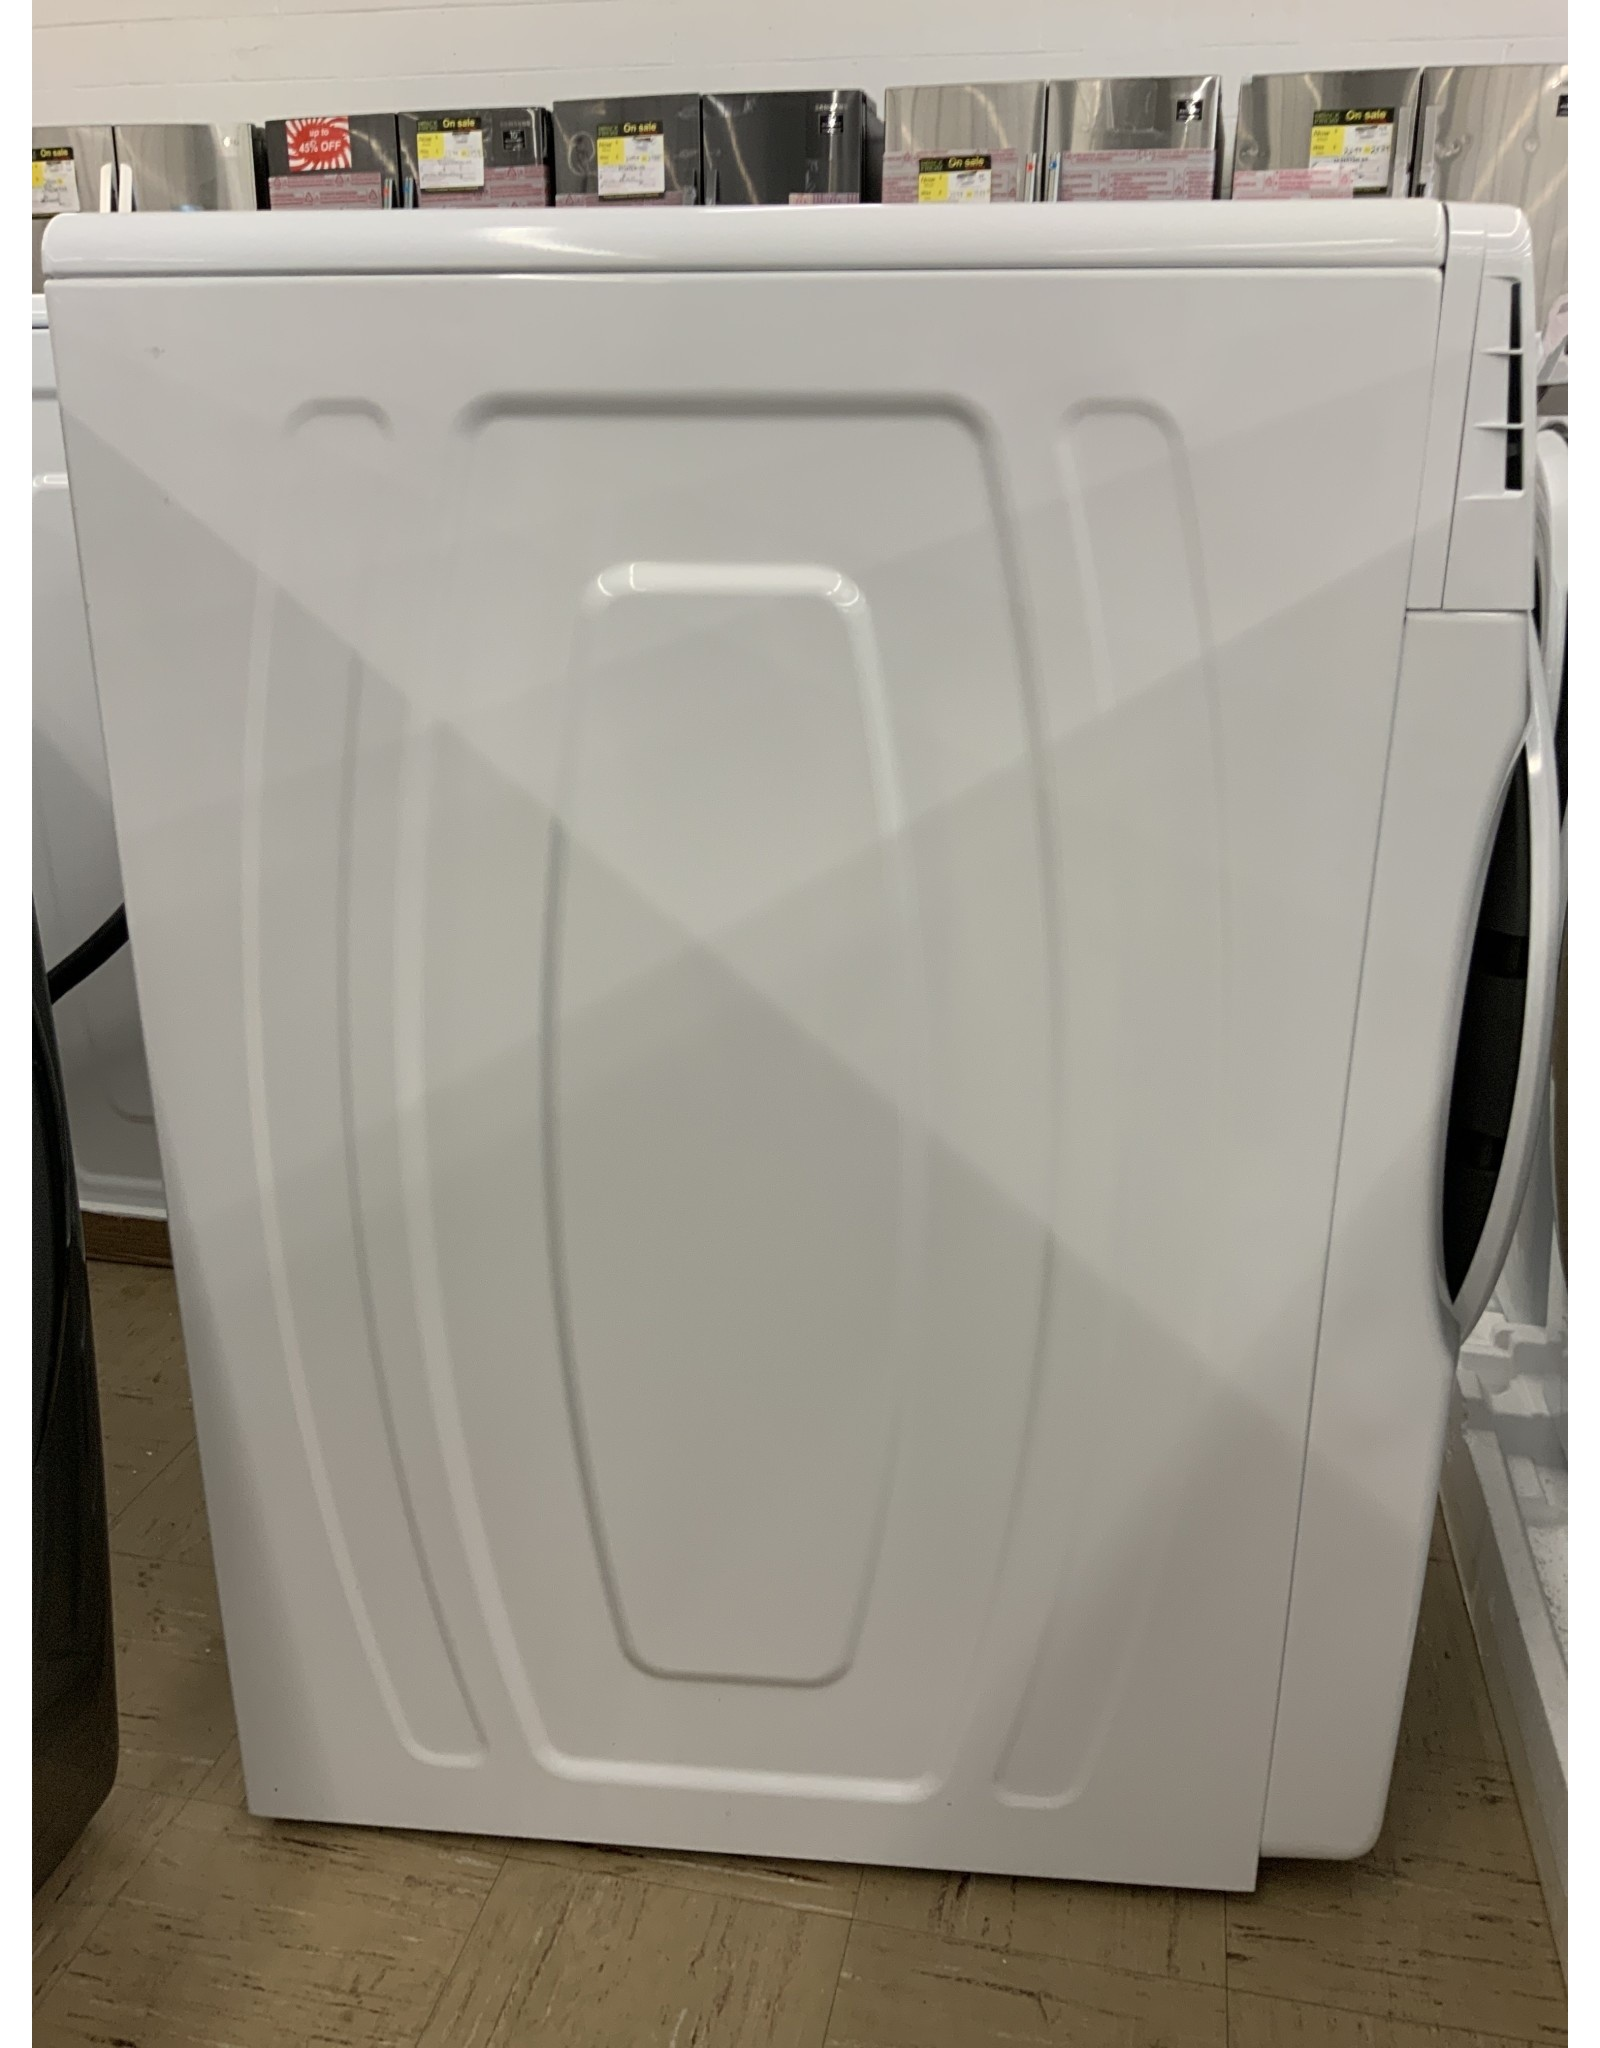 NFW5800HW 4.3 cu. ft. ENERGY STAR Qualified White Front Load Washer with Large Capacity